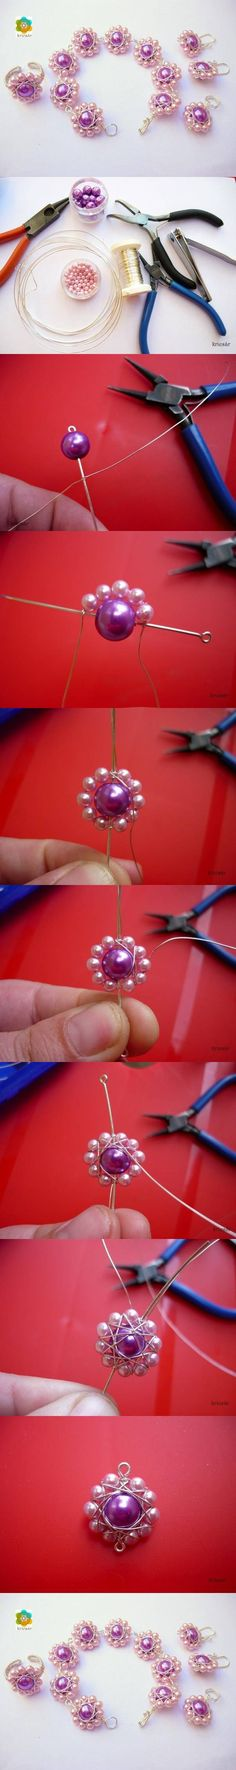 DIY Bead Flower Internet Tutorial I can skip the wire part, maybe some seed beads:D Wire Wrapped Jewelry, Wire Jewelry, Beaded Jewelry, Handmade Jewelry, Jewlery, Beaded Bracelet, Diy Bracelet, Wire Crafts, Bead Crafts